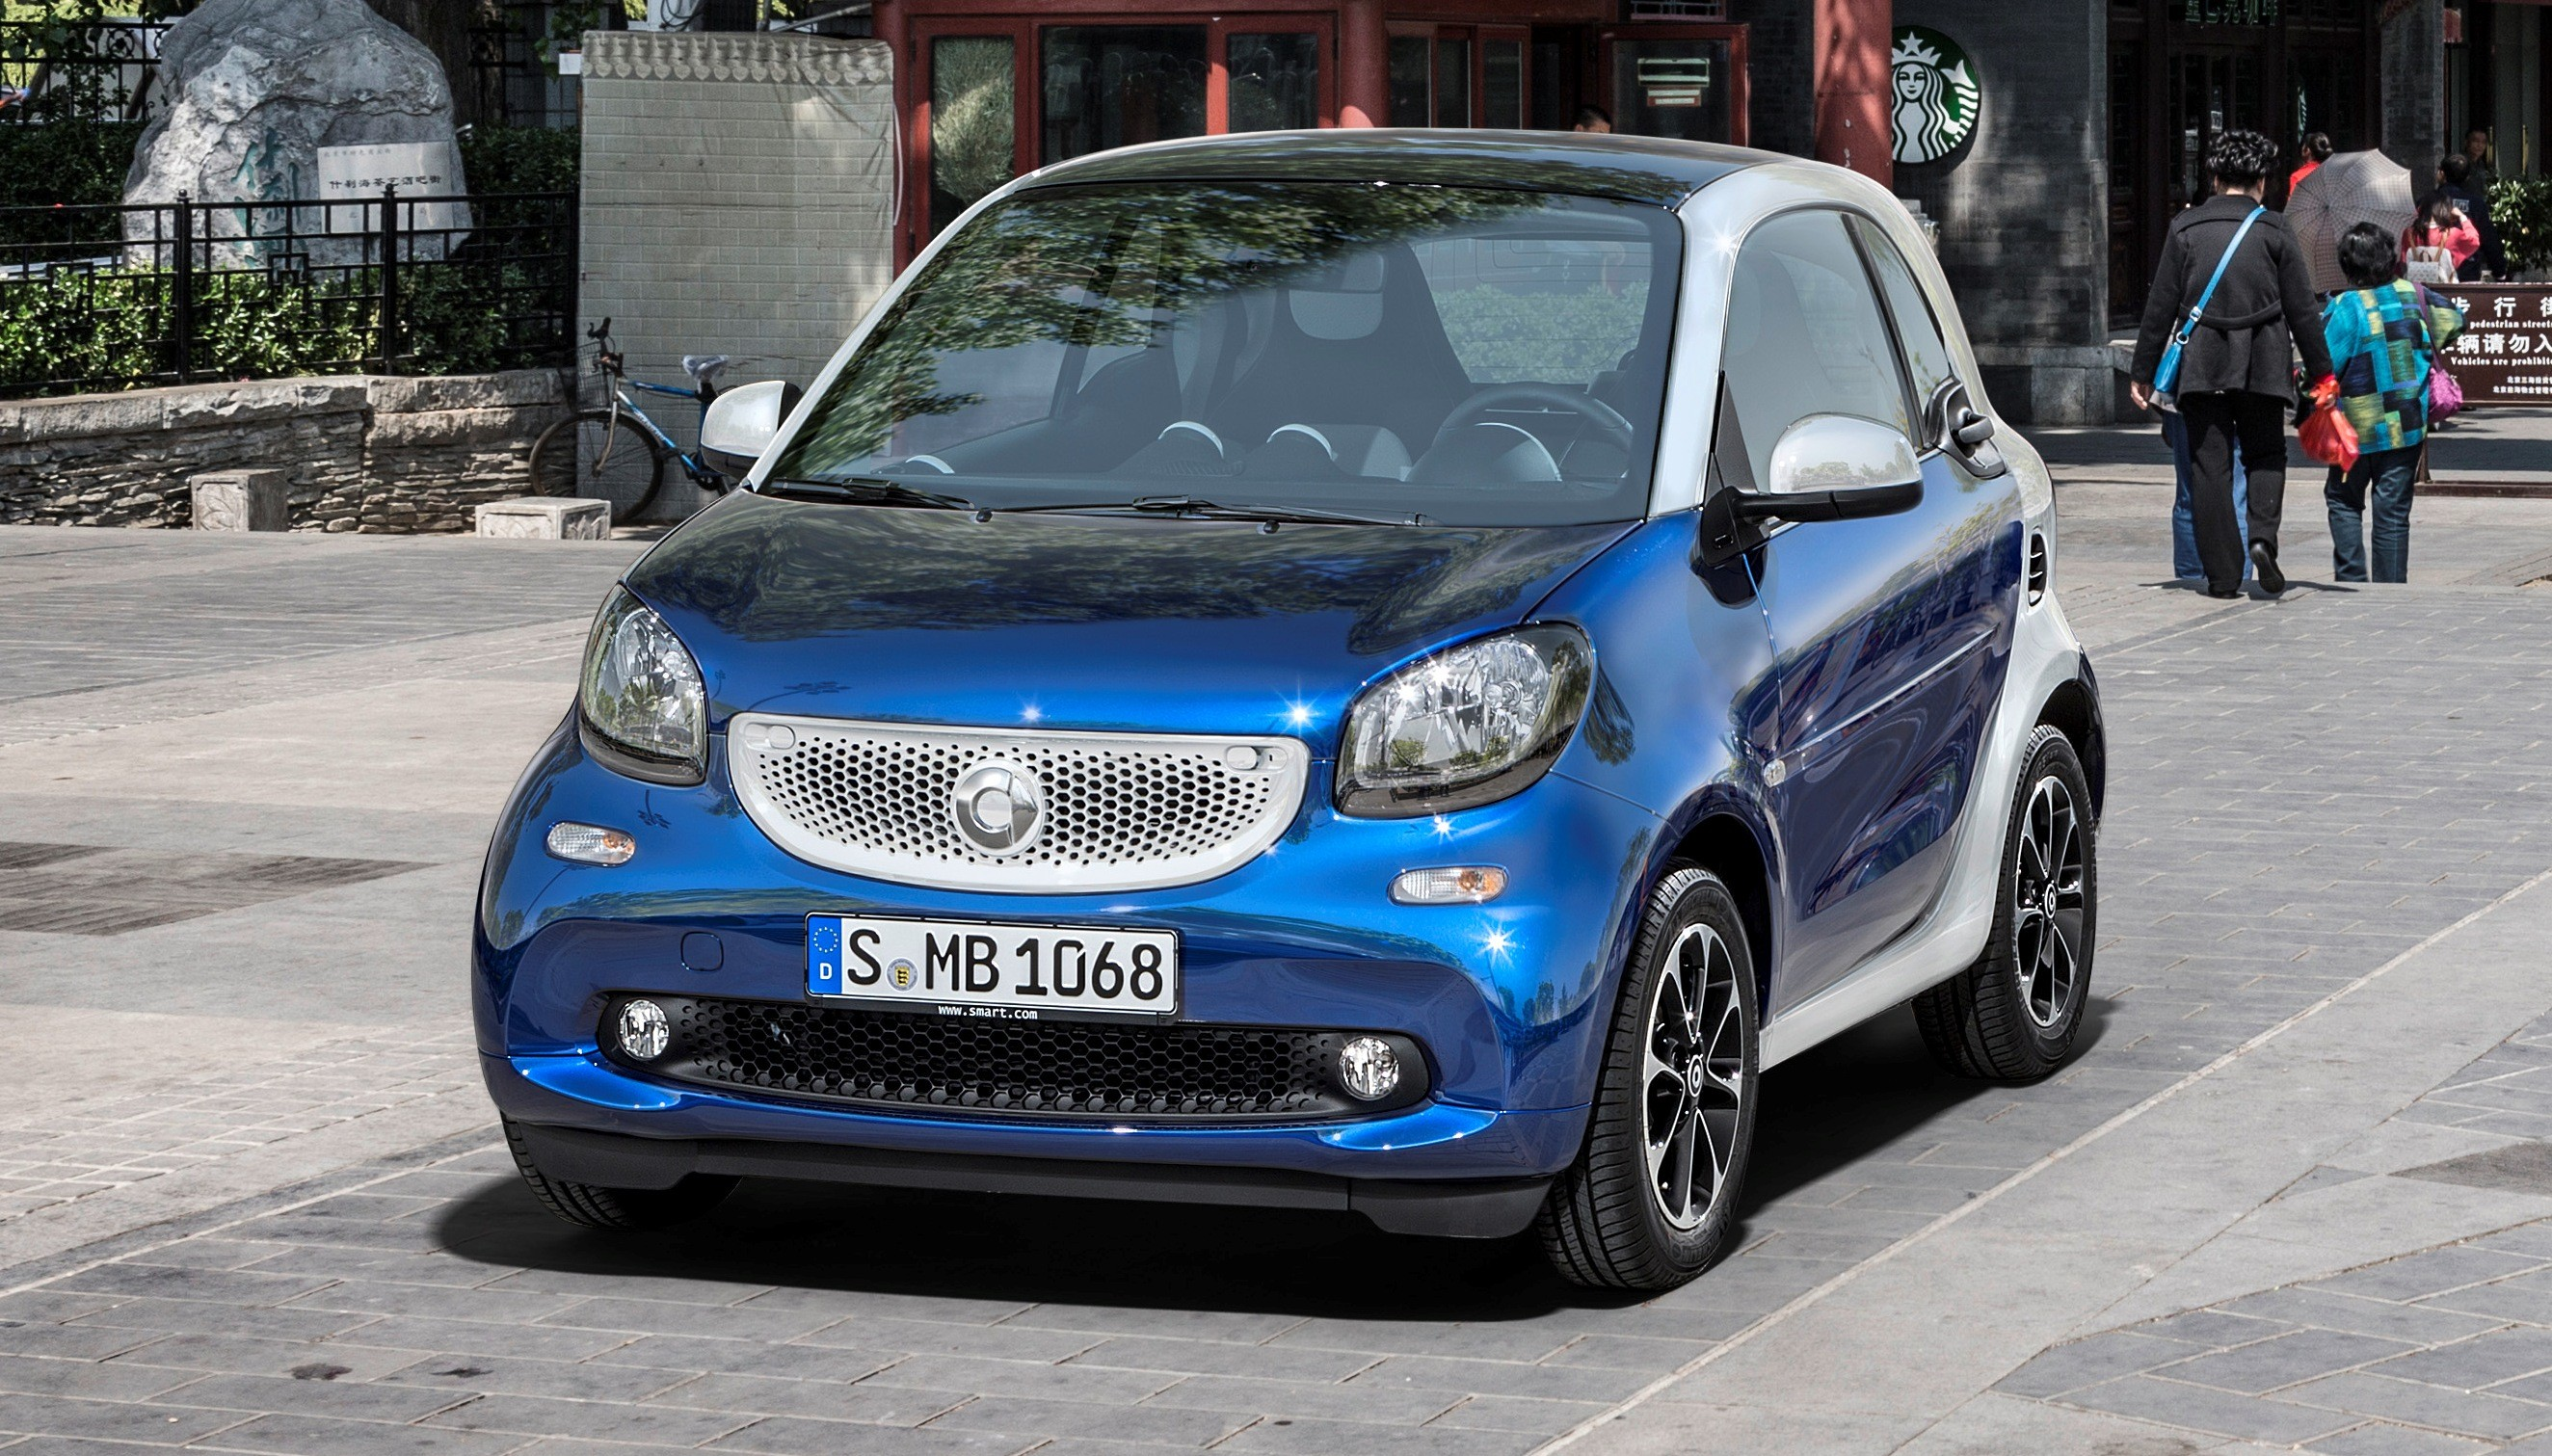 2015 smart fortwo and forfour new dual clutch automatic 2 and 4 door options. Black Bedroom Furniture Sets. Home Design Ideas